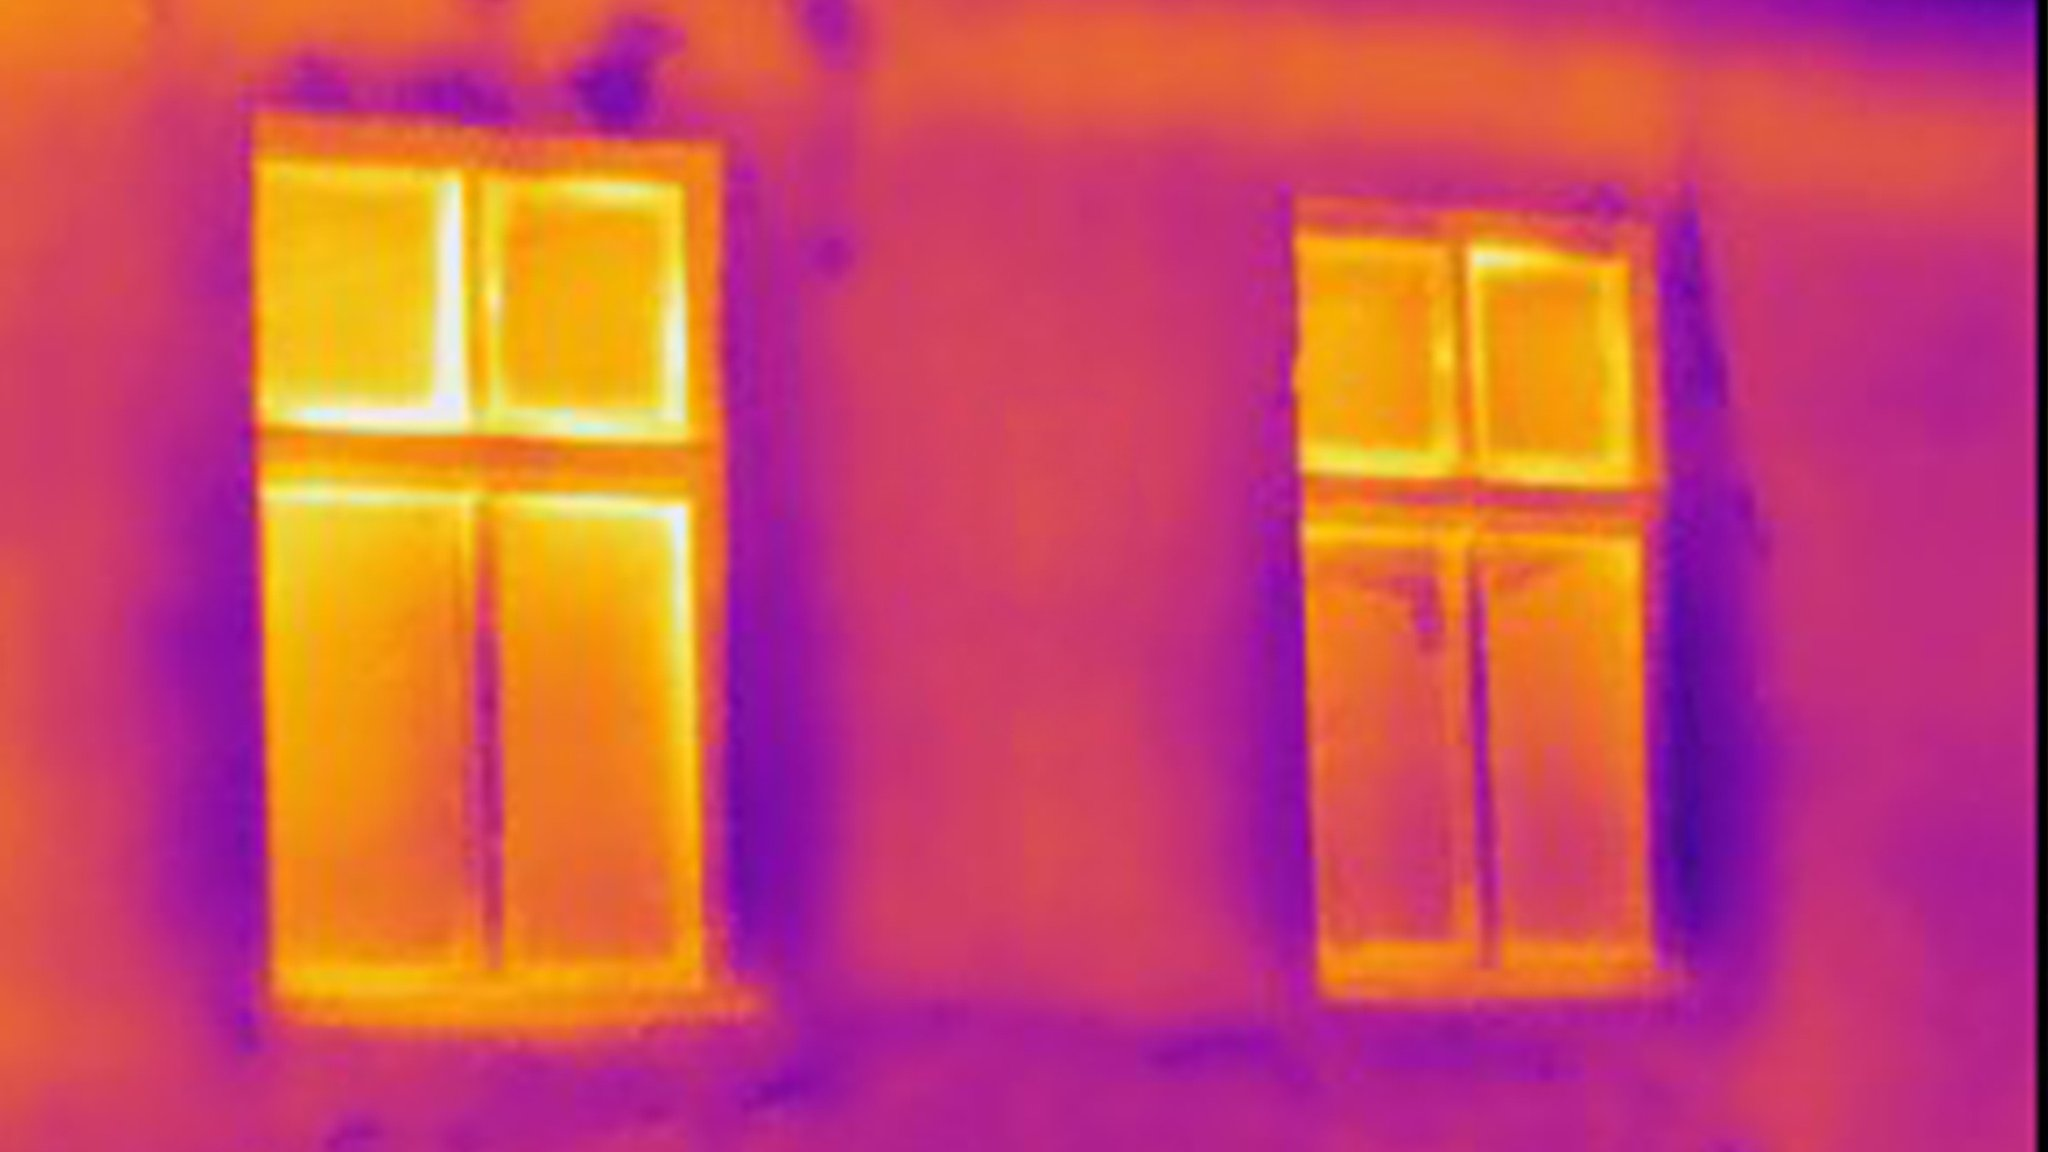 Green heating system accused of causing 'fuel poverty'